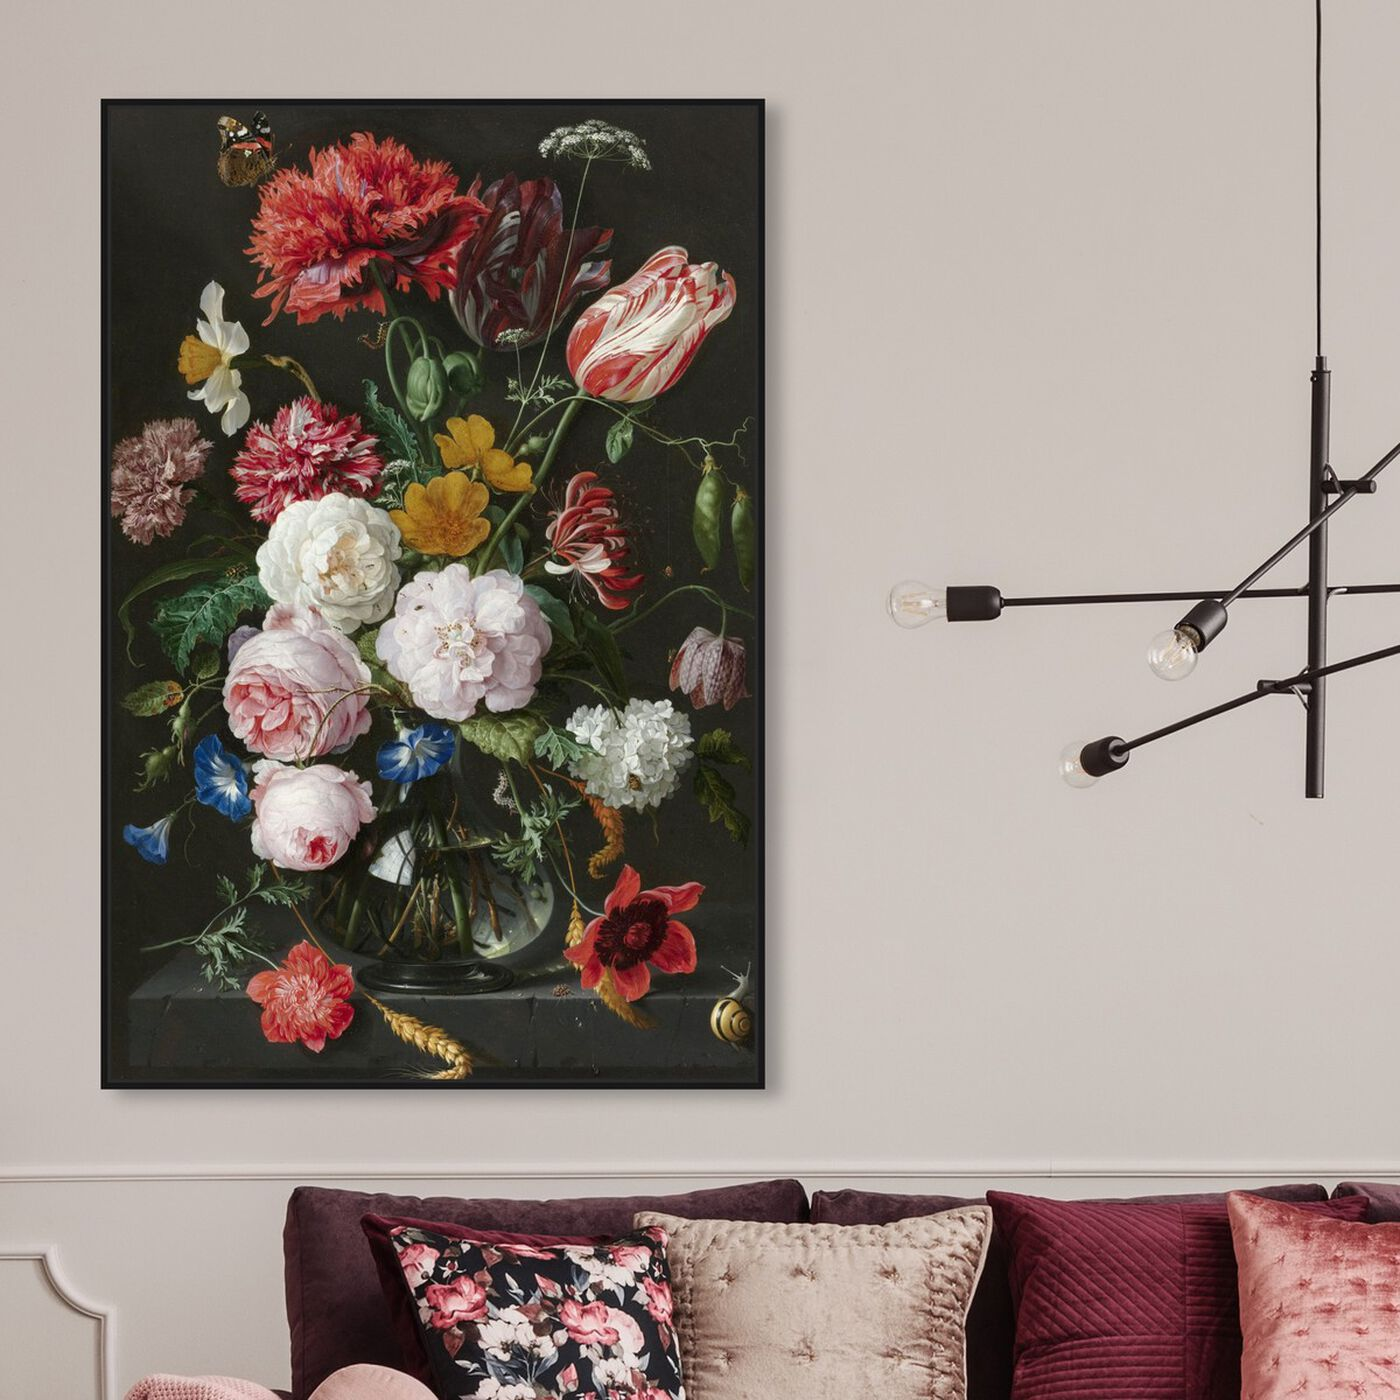 Hanging view of Flower Arrangement XIV - The Art Cabinet featuring floral and botanical and florals art.